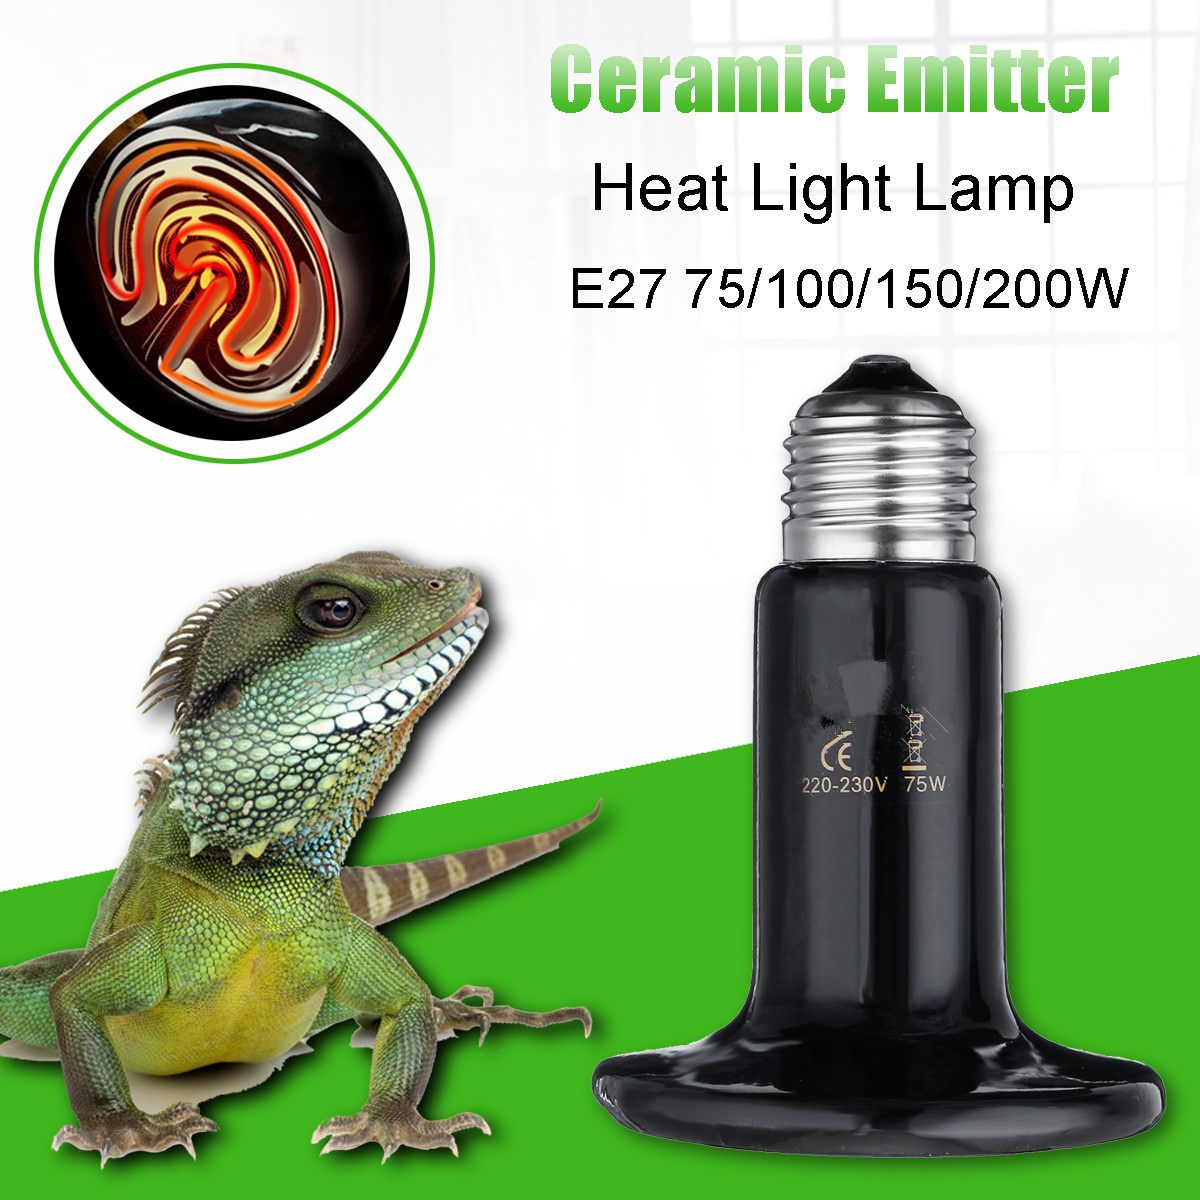 Smuxi 220V-230V E27 Pet Heating Bulb Infrared Ceramic Emitter Heat Lamps for Reptile Pet Heater Brooder  Socket Infrared CeramicSmuxi 220V-230V E27 Pet Heating Bulb Infrared Ceramic Emitter Heat Lamps for Reptile Pet Heater Brooder  Socket Infrared Ceramic